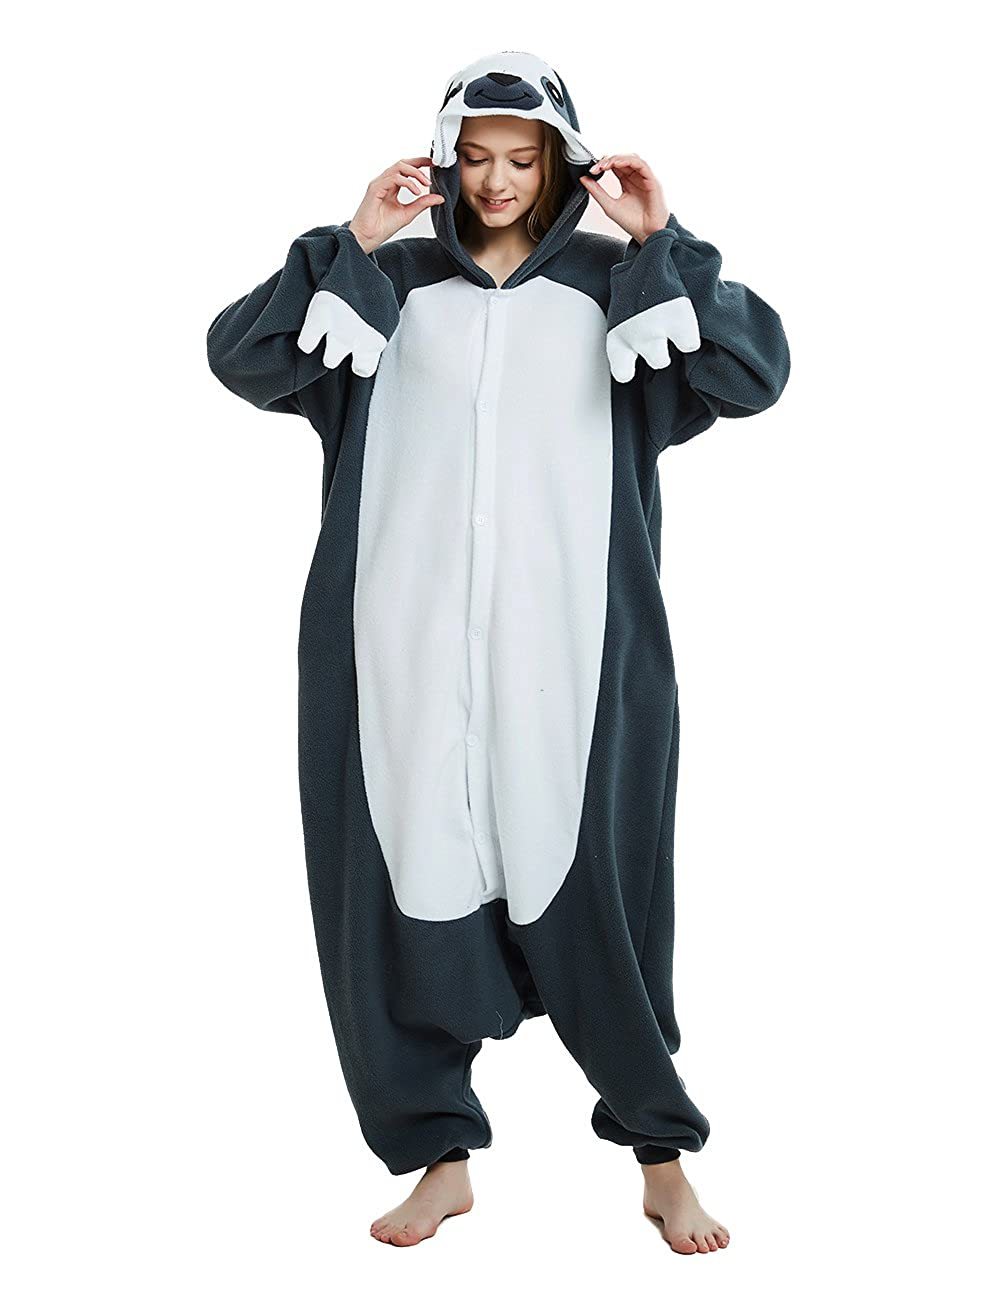 Ifboxs Cow Animal Onesie Pajamas Halloween Cosplay Costume for Women and Girls